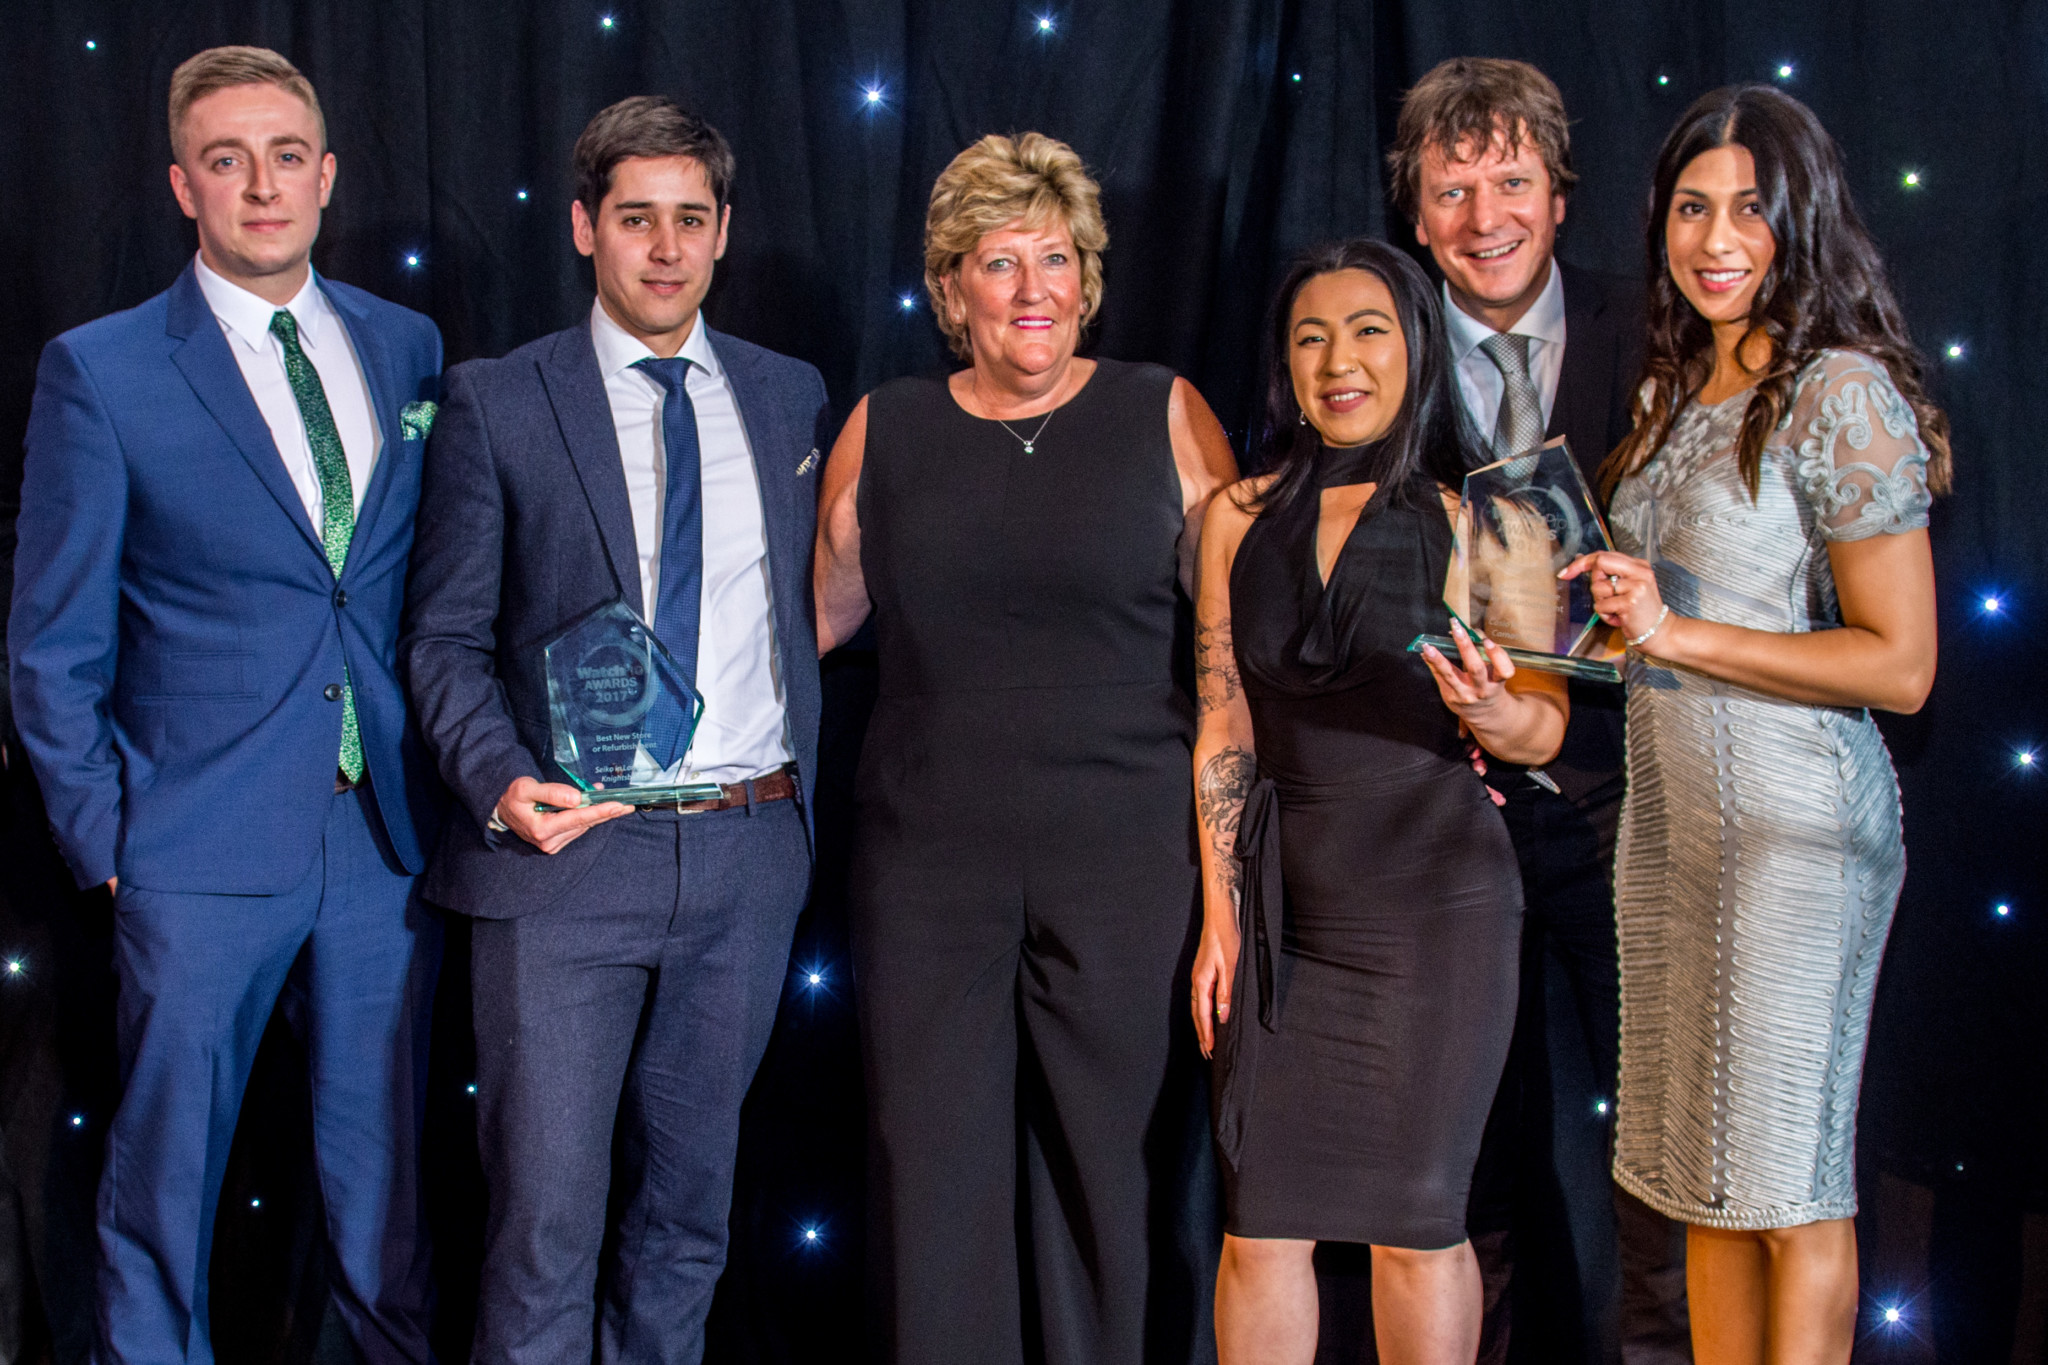 Seiko and Casio are joint winners of the WatchPro Award for Best New Store or Refurbishment.